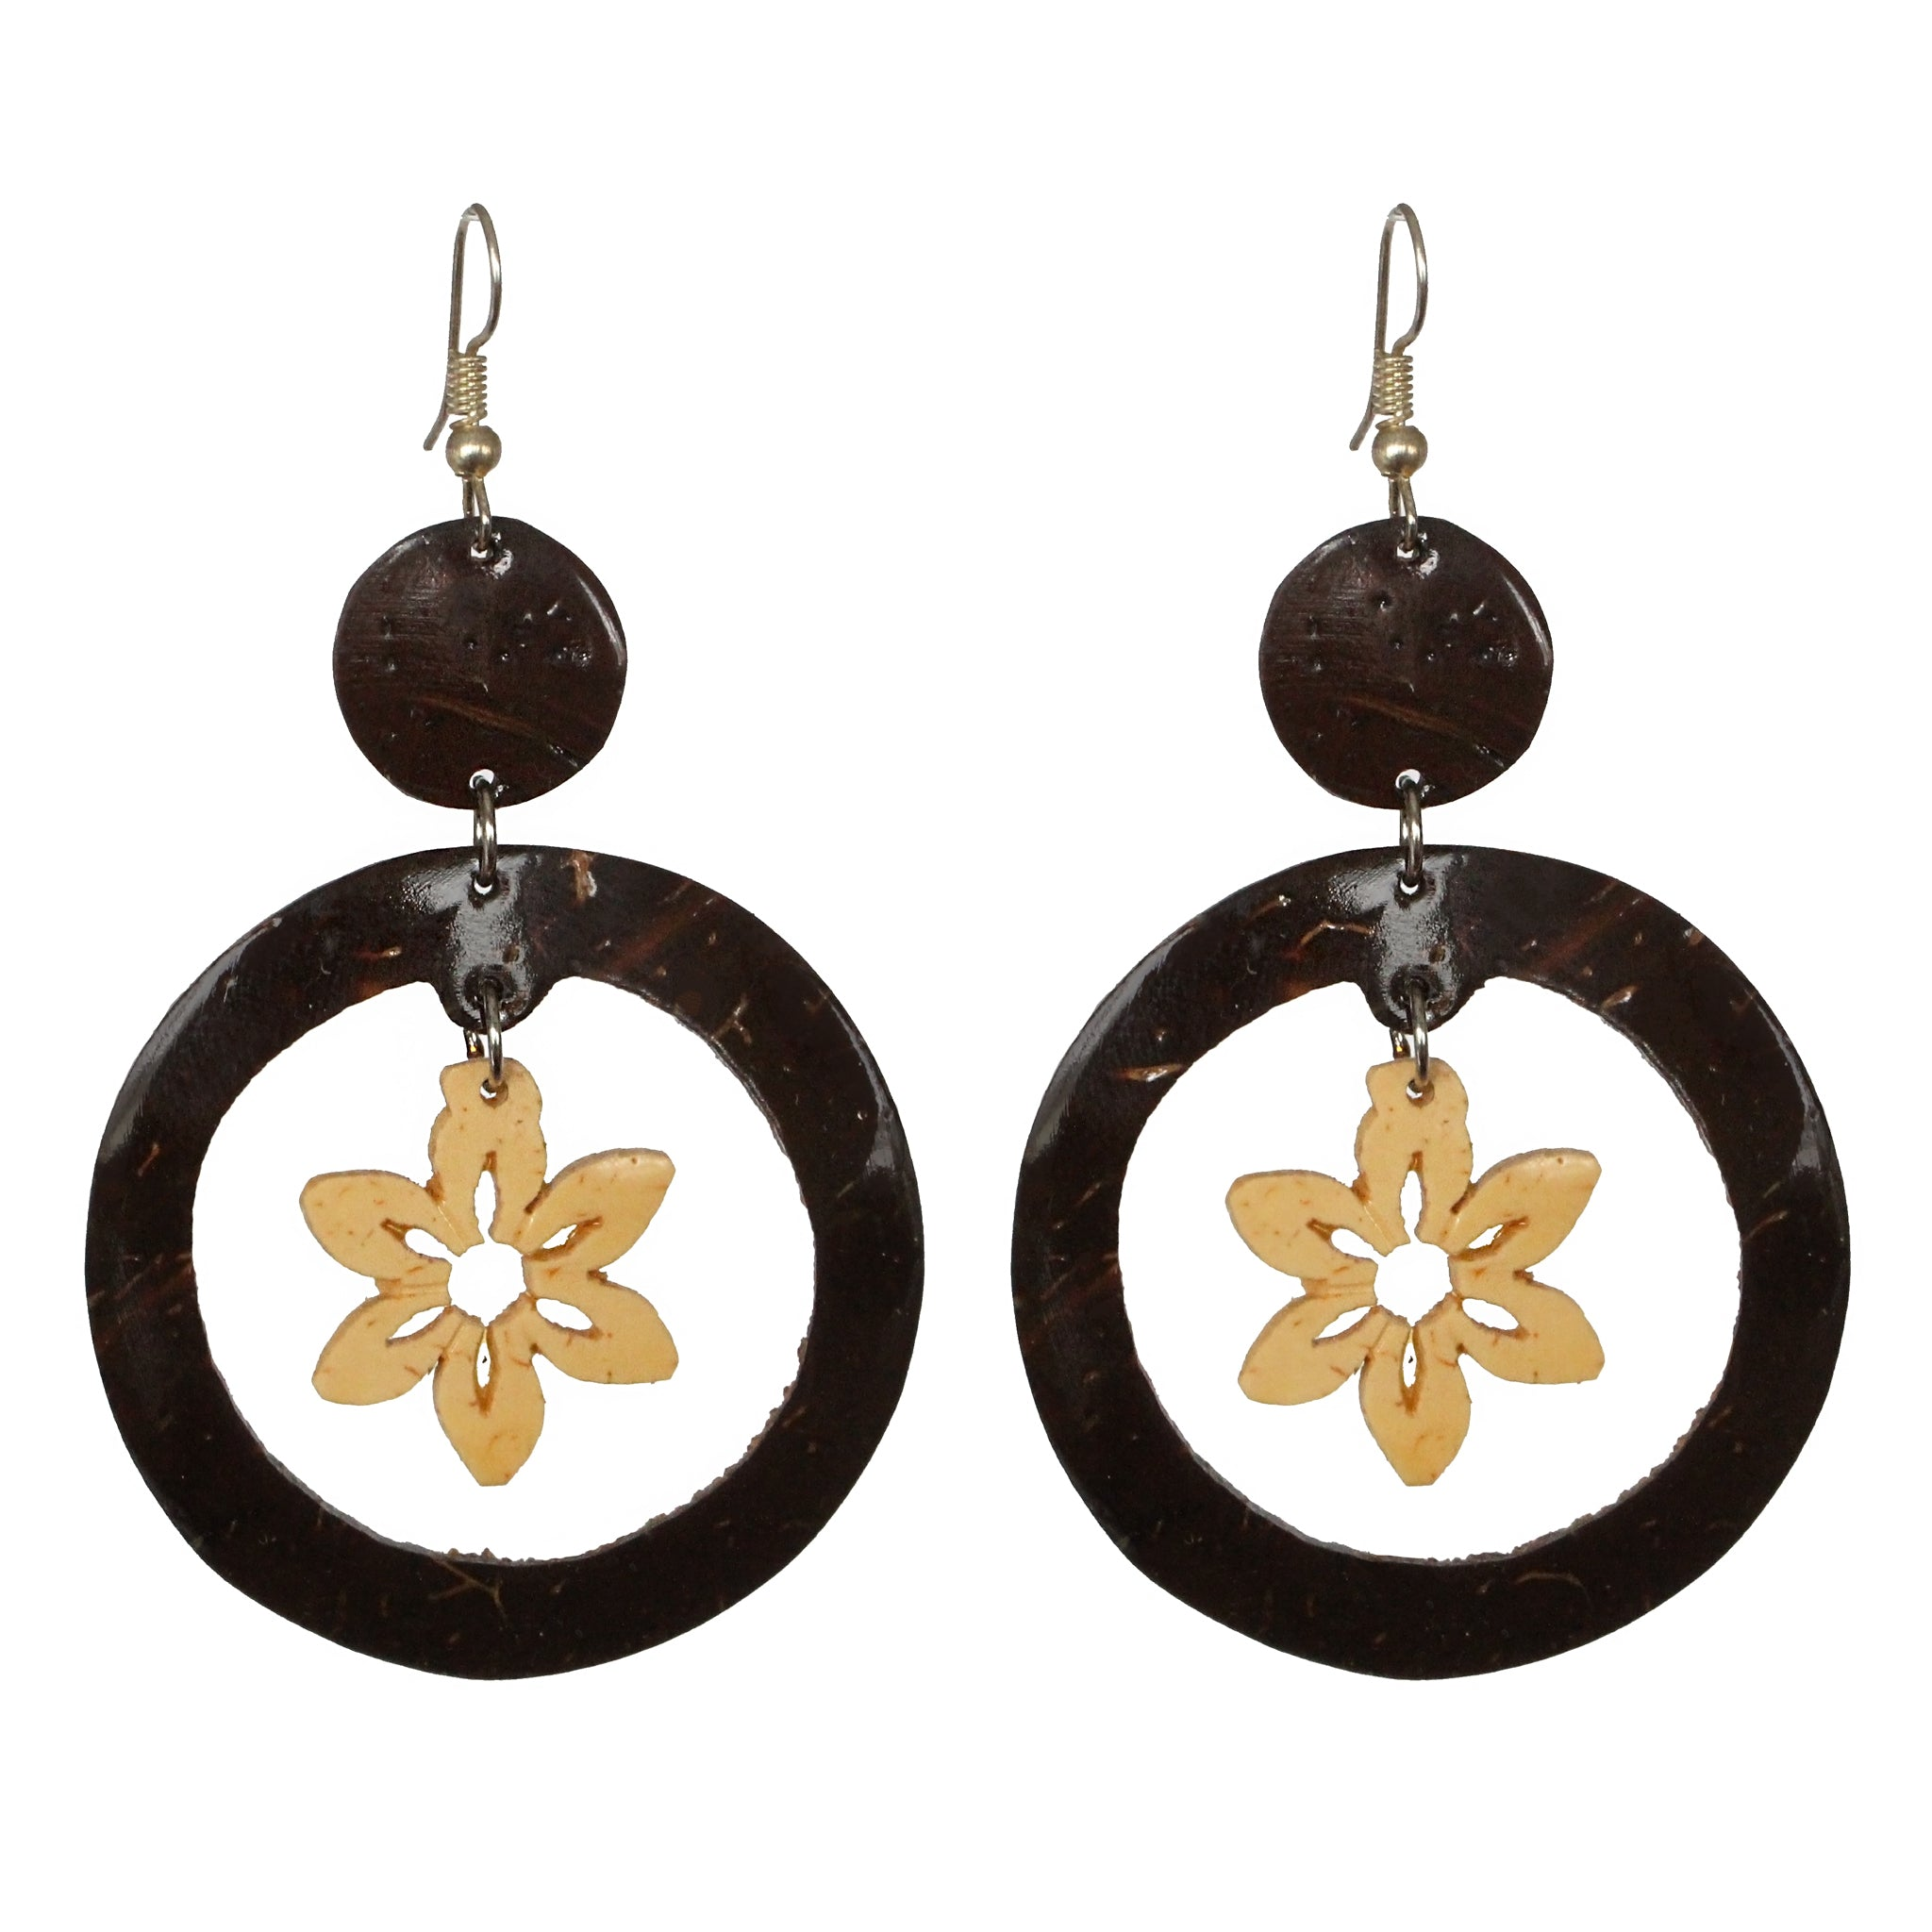 Coconut Earrings - Dangle Flower